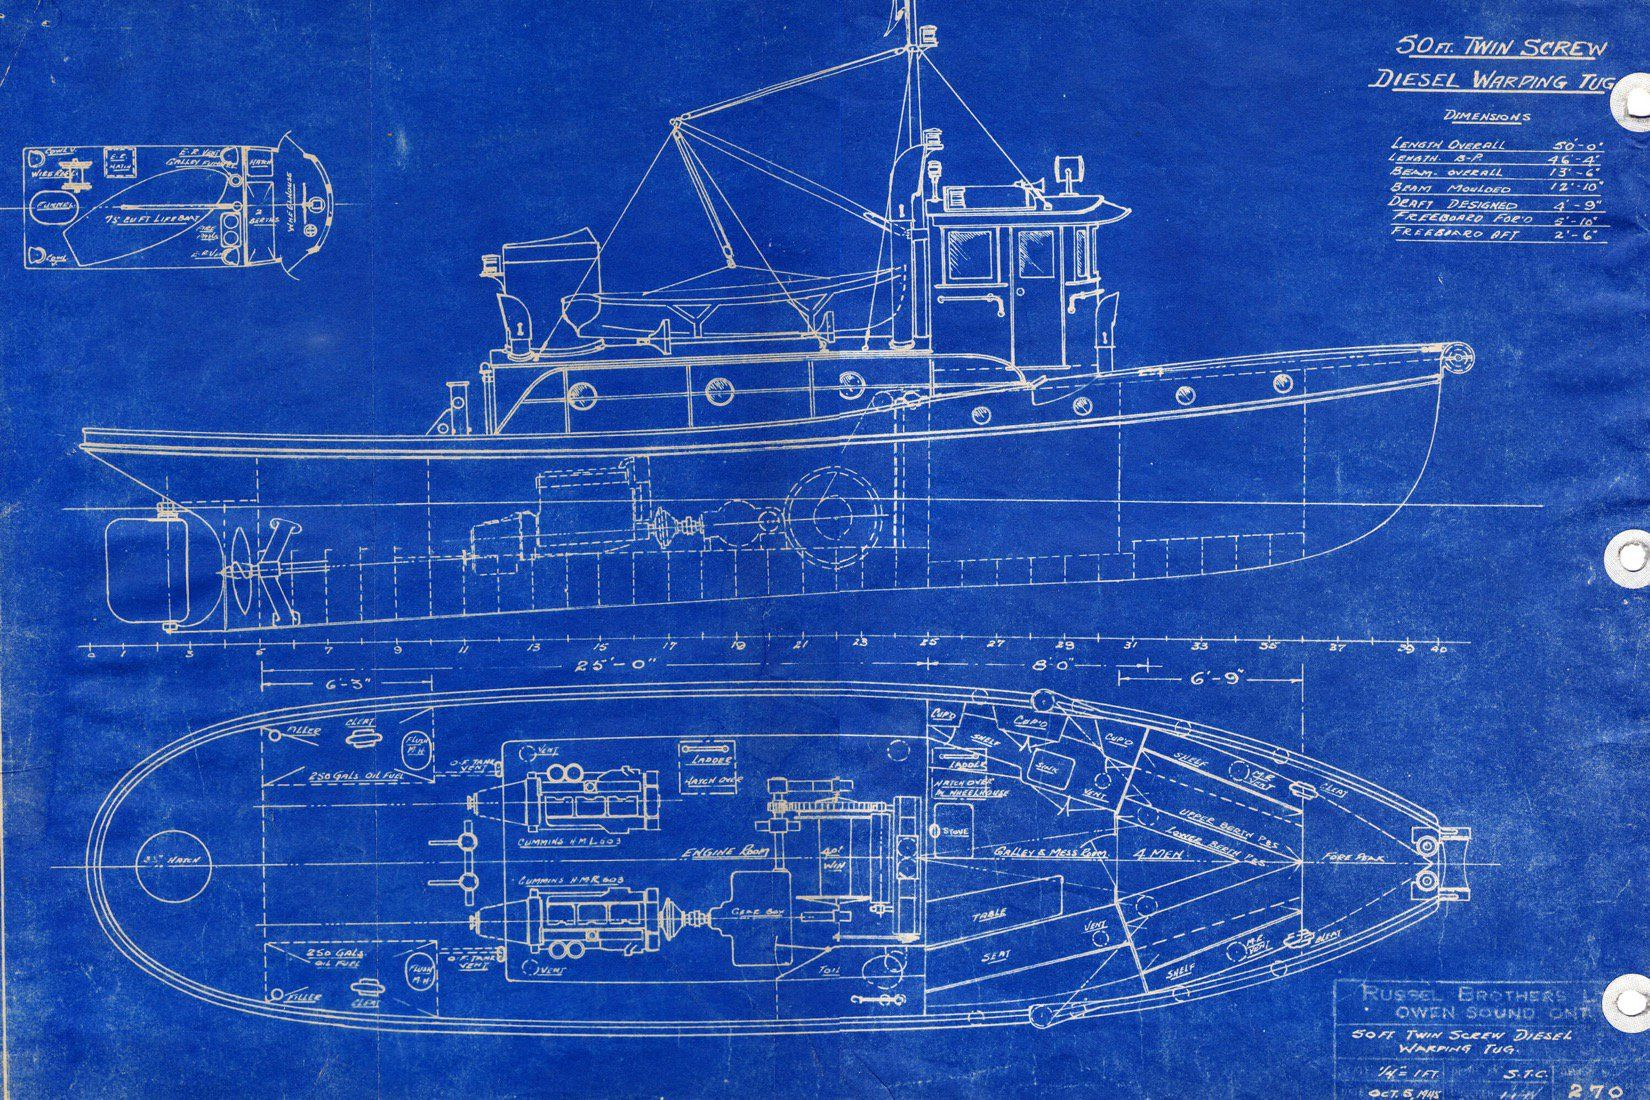 Blueprint boat wallpaper wall mural muralswallpaper design blueprint boat wallpaper wall mural muralswallpaper design services wall murals and walls malvernweather Images